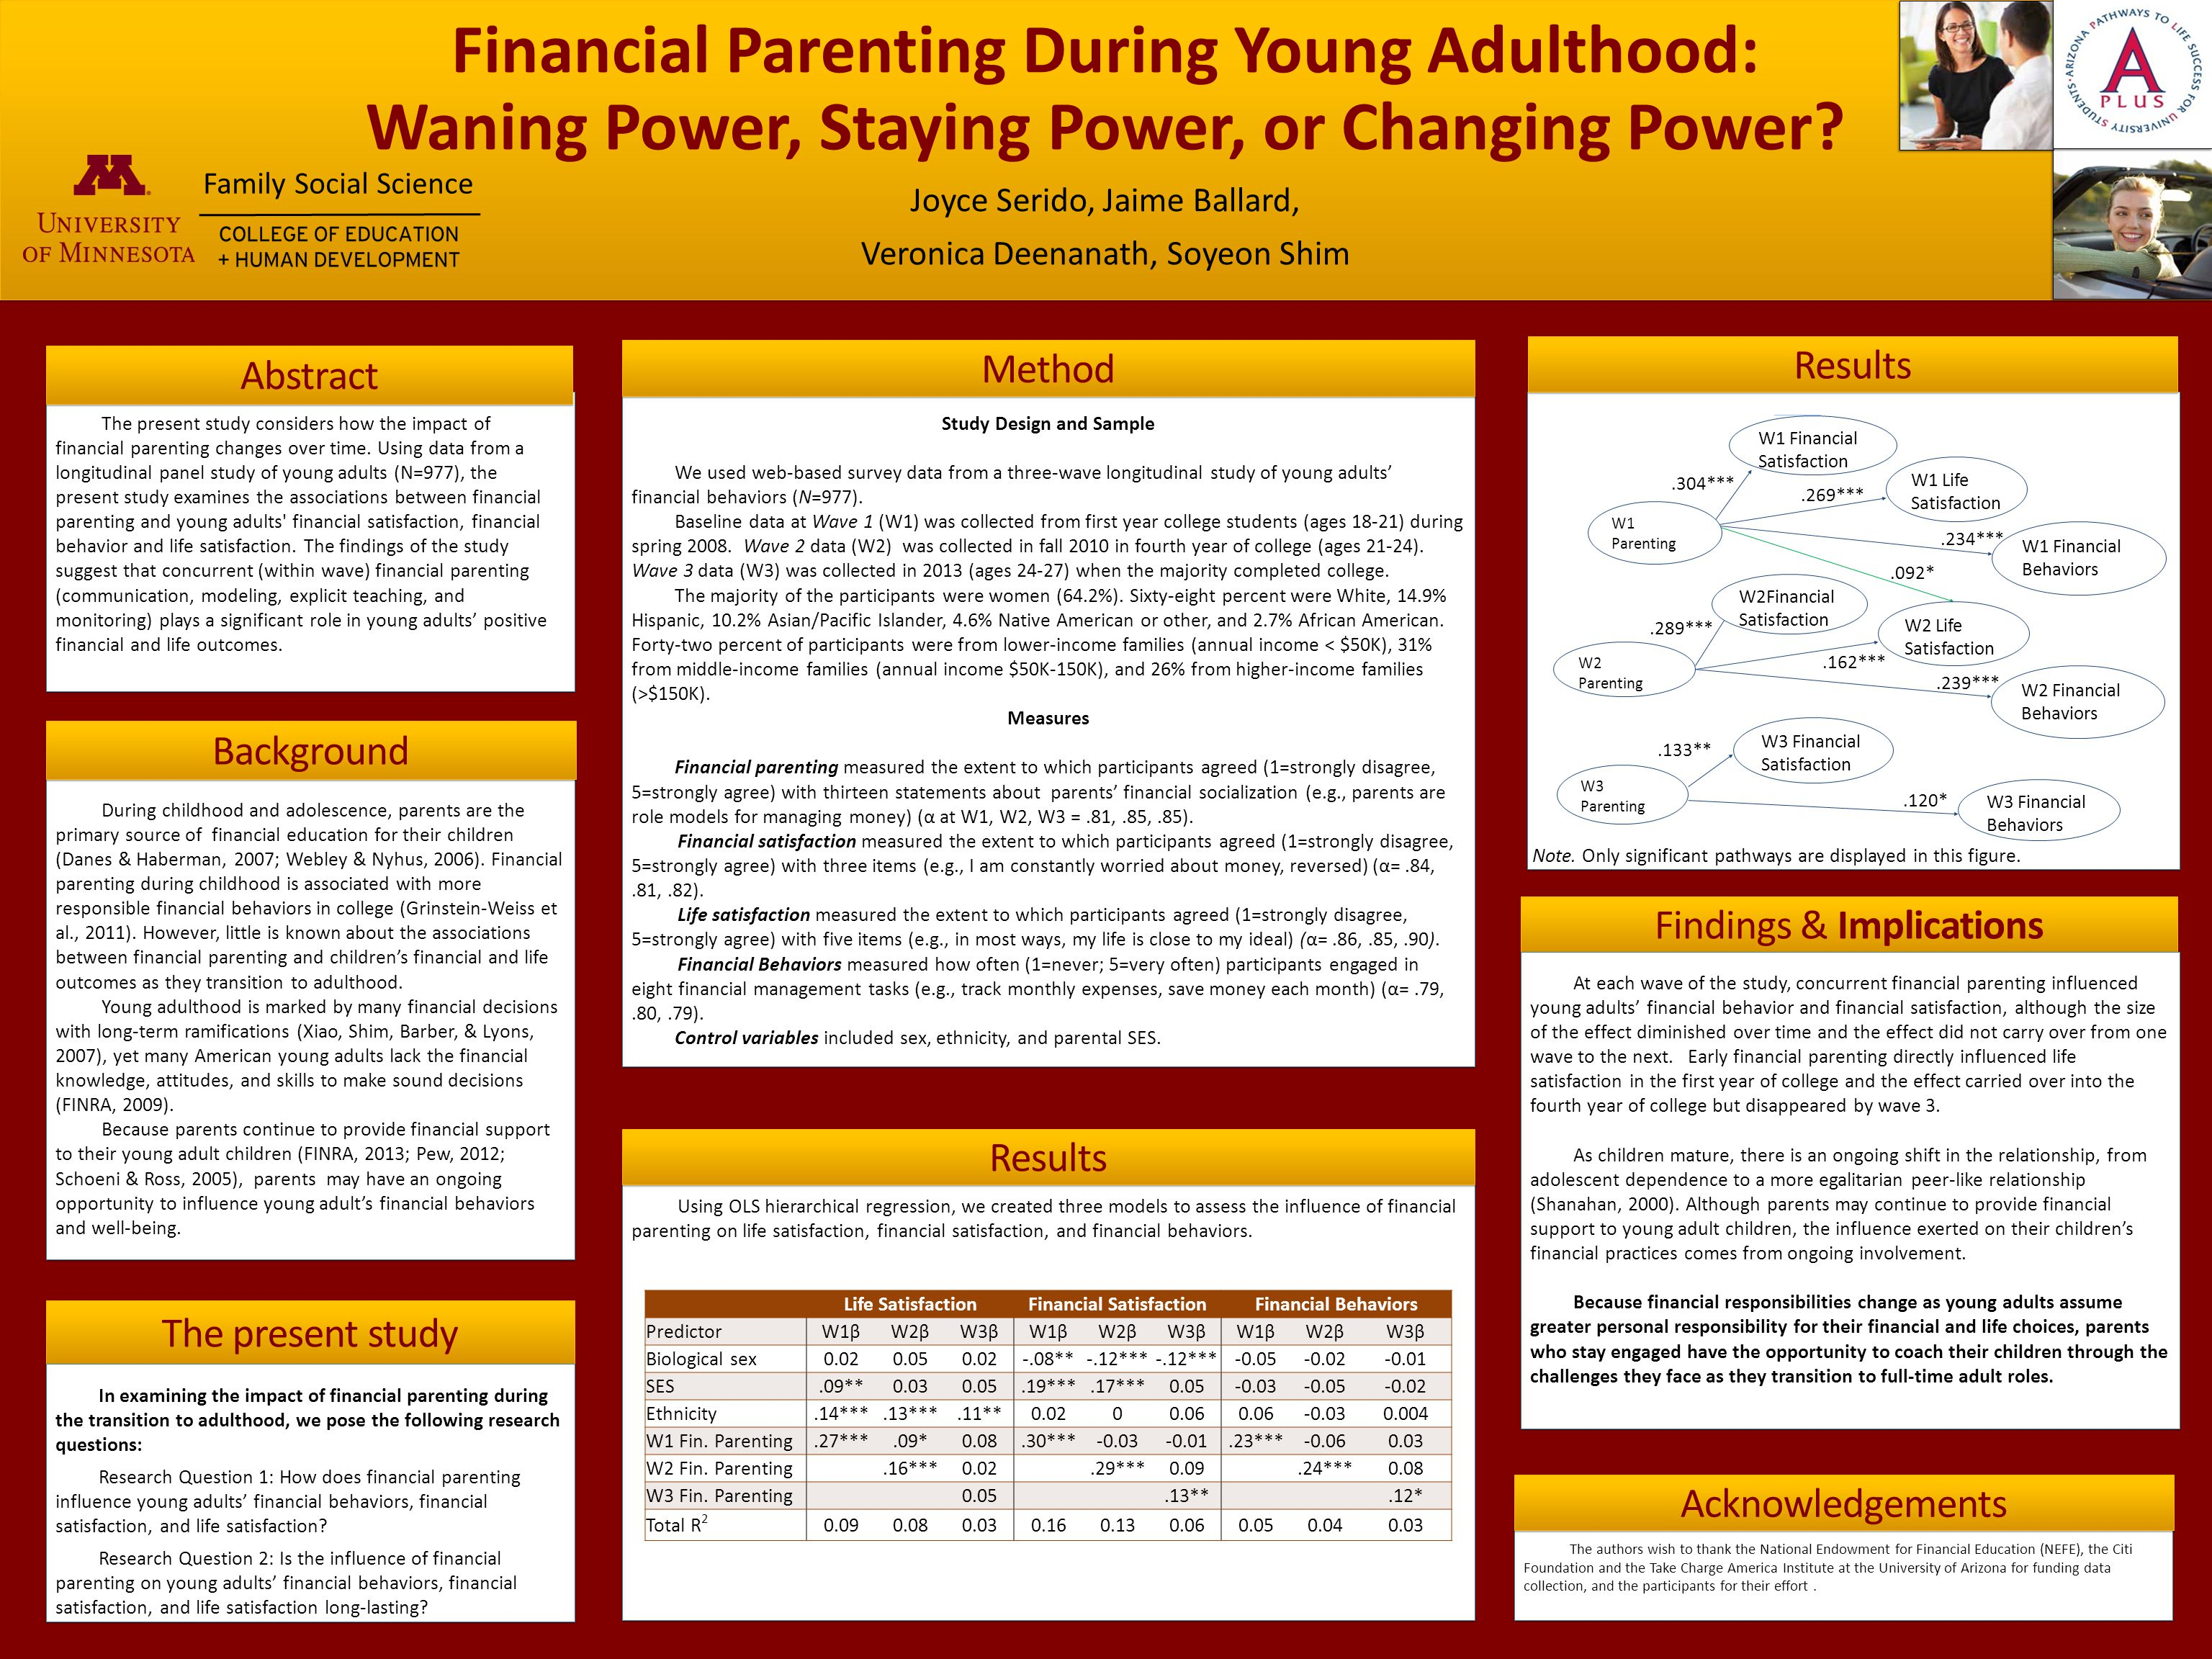 Financial Parenting During Young Adulthood: Waning Power, Staying Power, or Changing Power? Joyce Serido, Jaime Ballard, Veronica Deenanath, Soyeon Sh